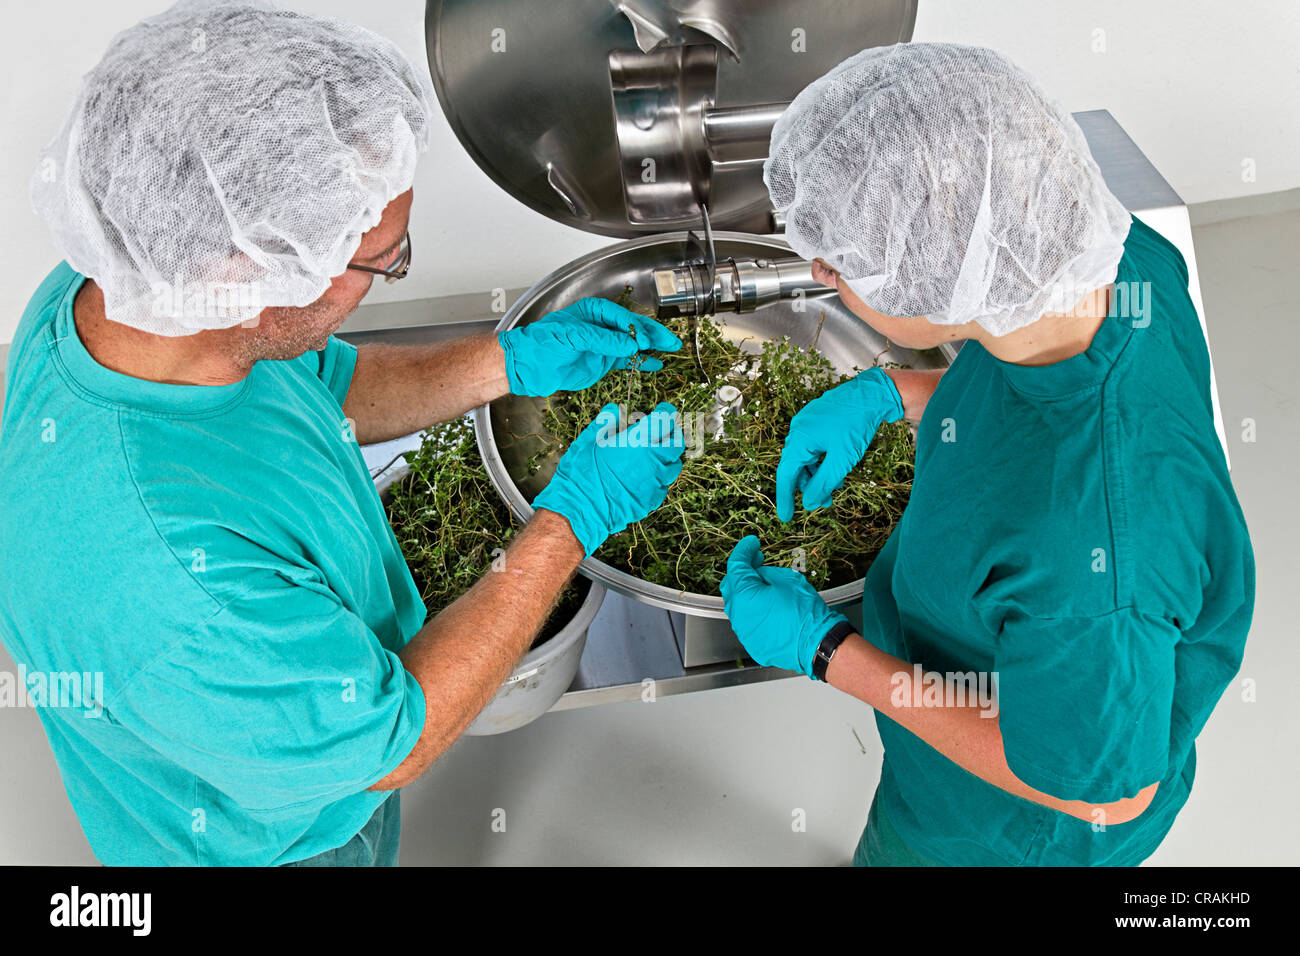 Eyebright (Euphrasia) being processed in a blender at a natural remedy company - Stock Image